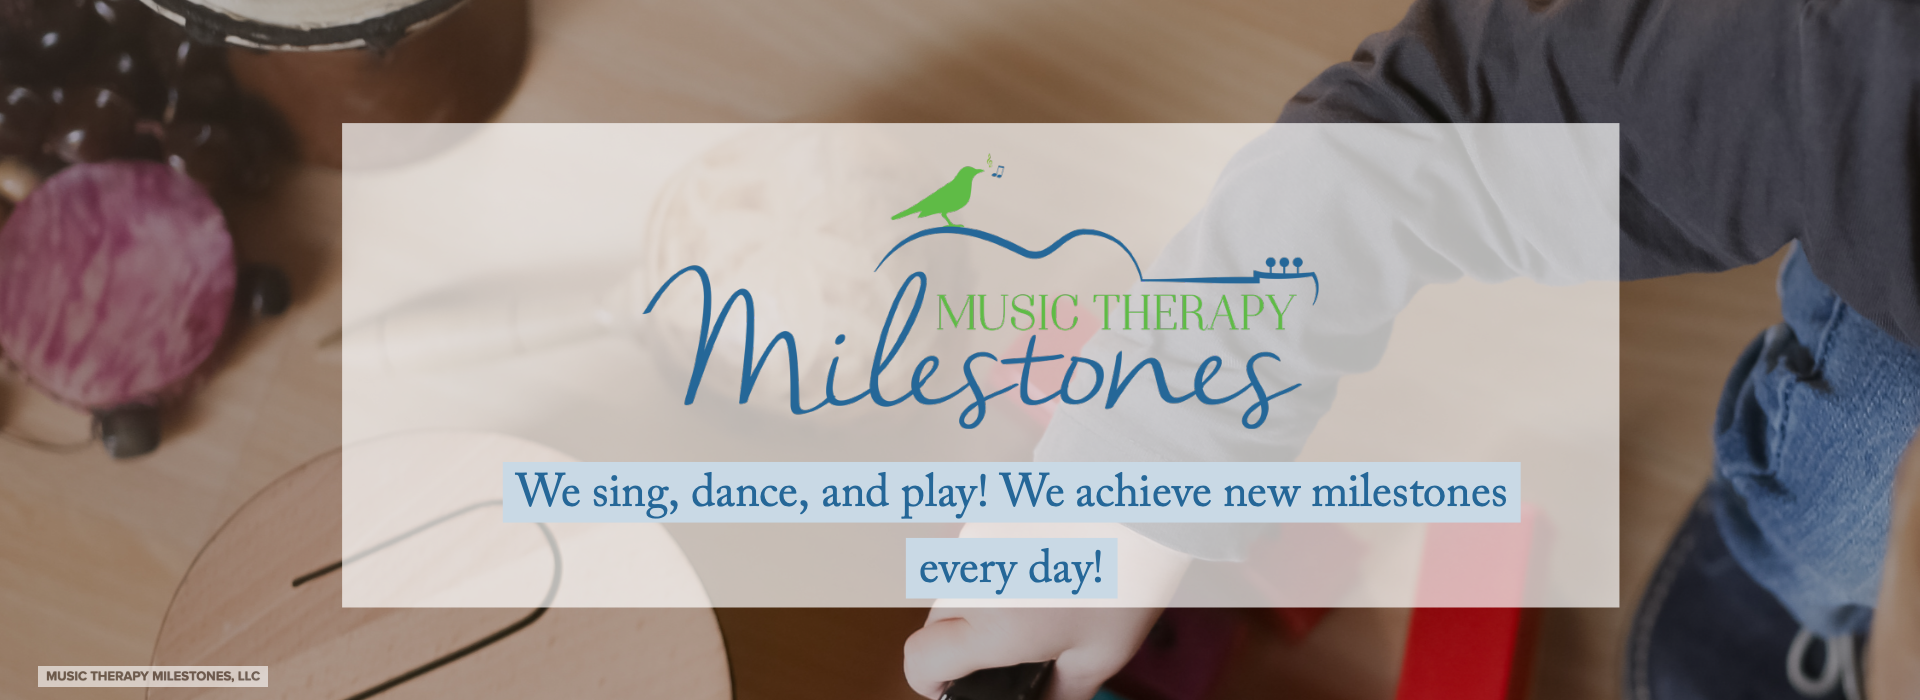 Music Therapy Milestones